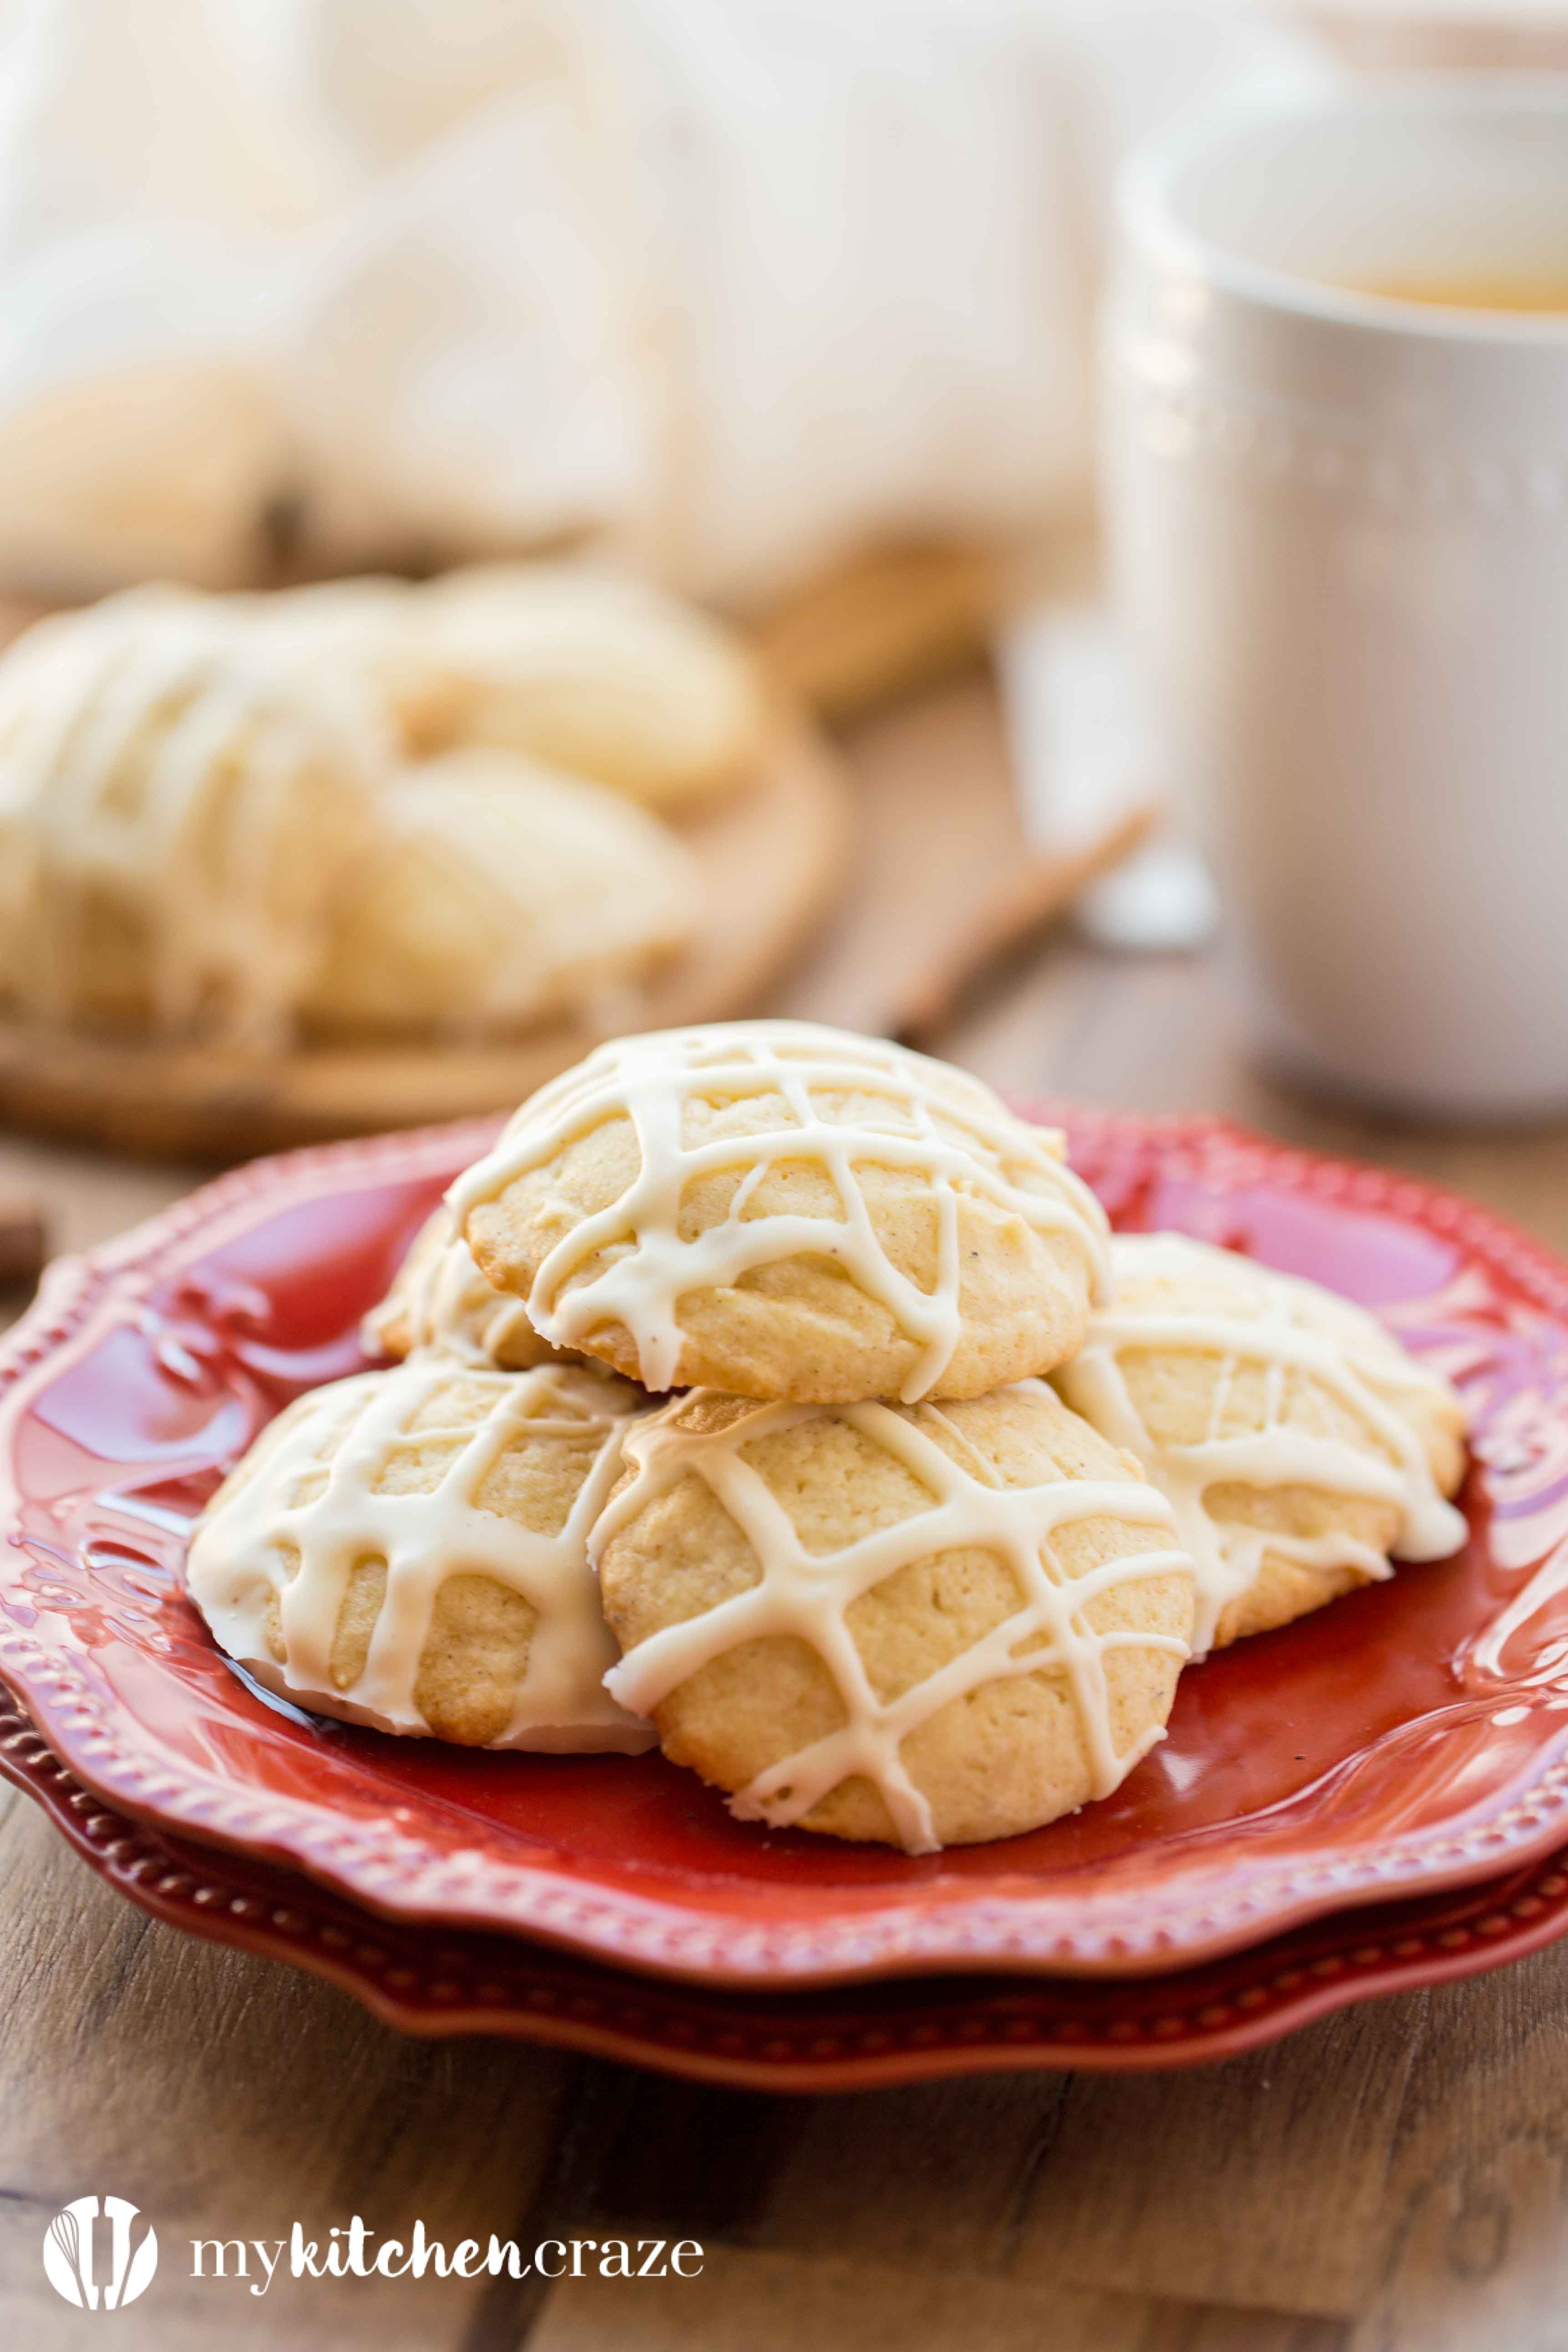 Eggnog Cookies are the perfect treat for your holiday party or cookie exchange. They're soft with crunchy edges and have a delicious eggnog glaze to top them off! You need to make them asap!